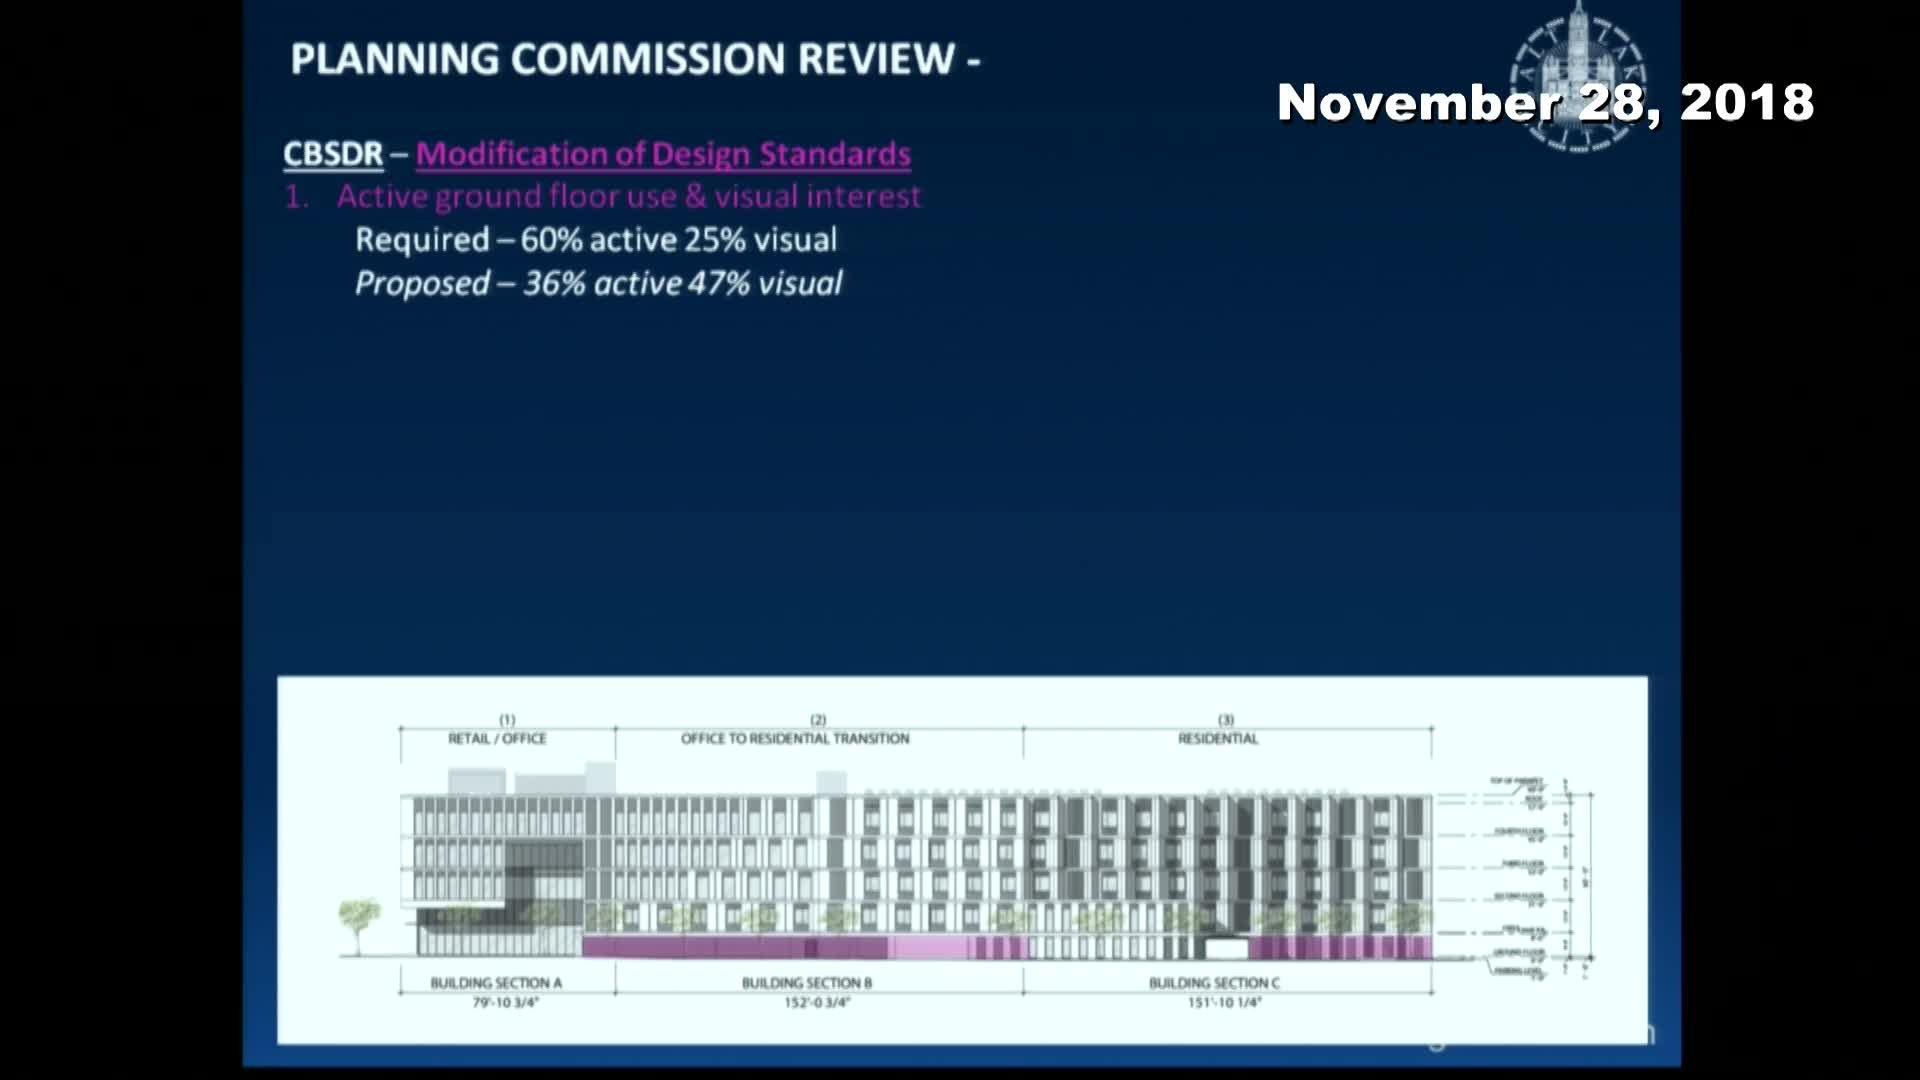 Planning Commission Meeting - 11/28/2018